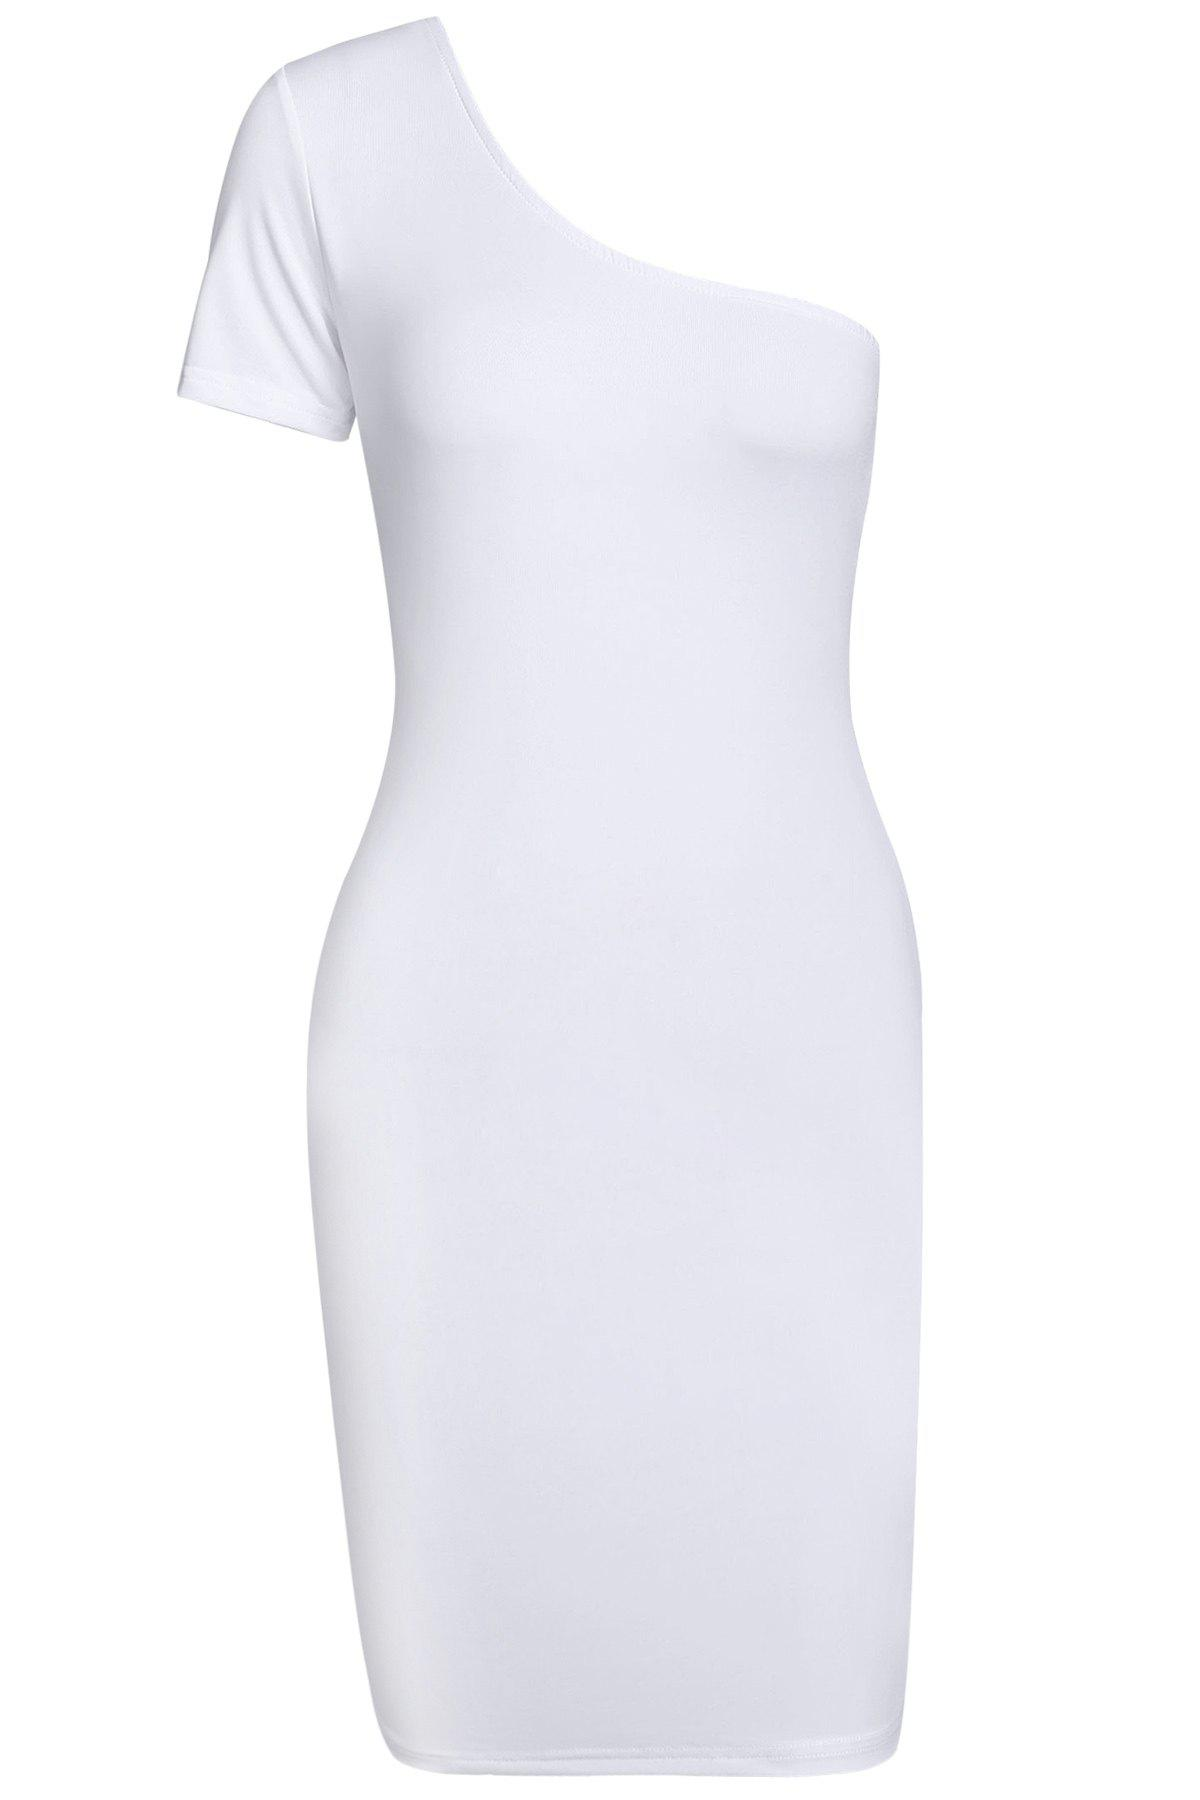 Sexy One Shoulder Short Sleeve Solid Color Women's Bodycon Dress